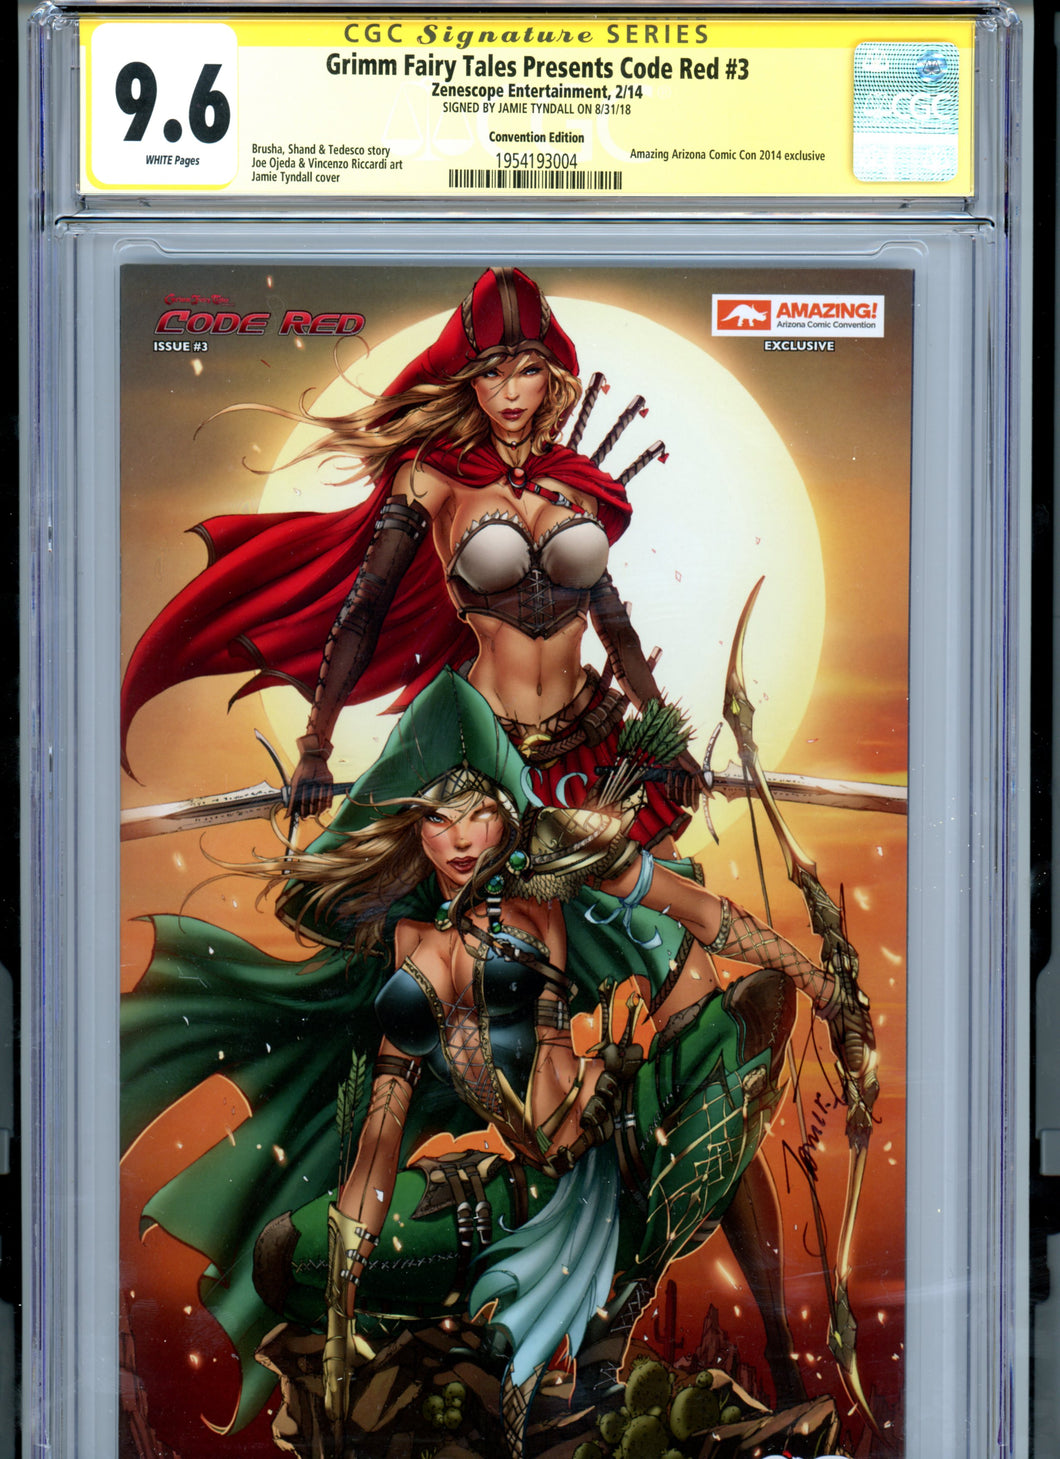 Grimm Fairy Tales Code Red #3 - Signed by Jamie Tyndall - CGC 9.6